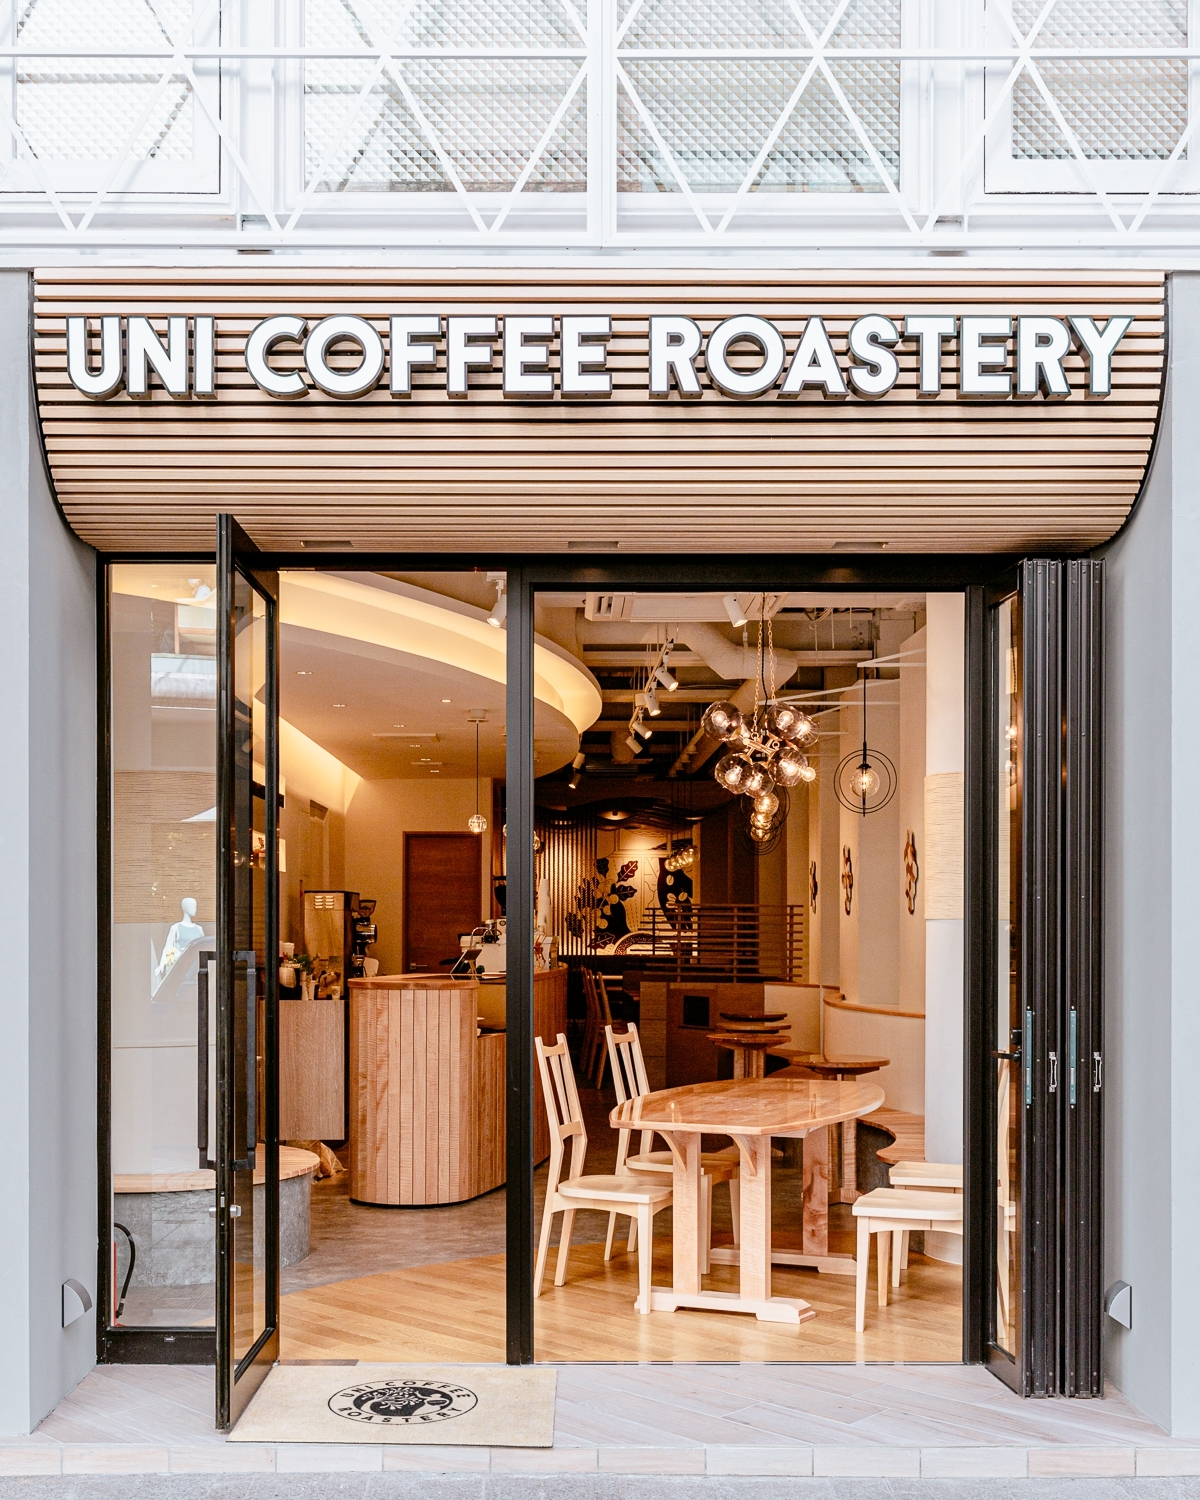 UNI COFFEE ROASTERY横浜元町